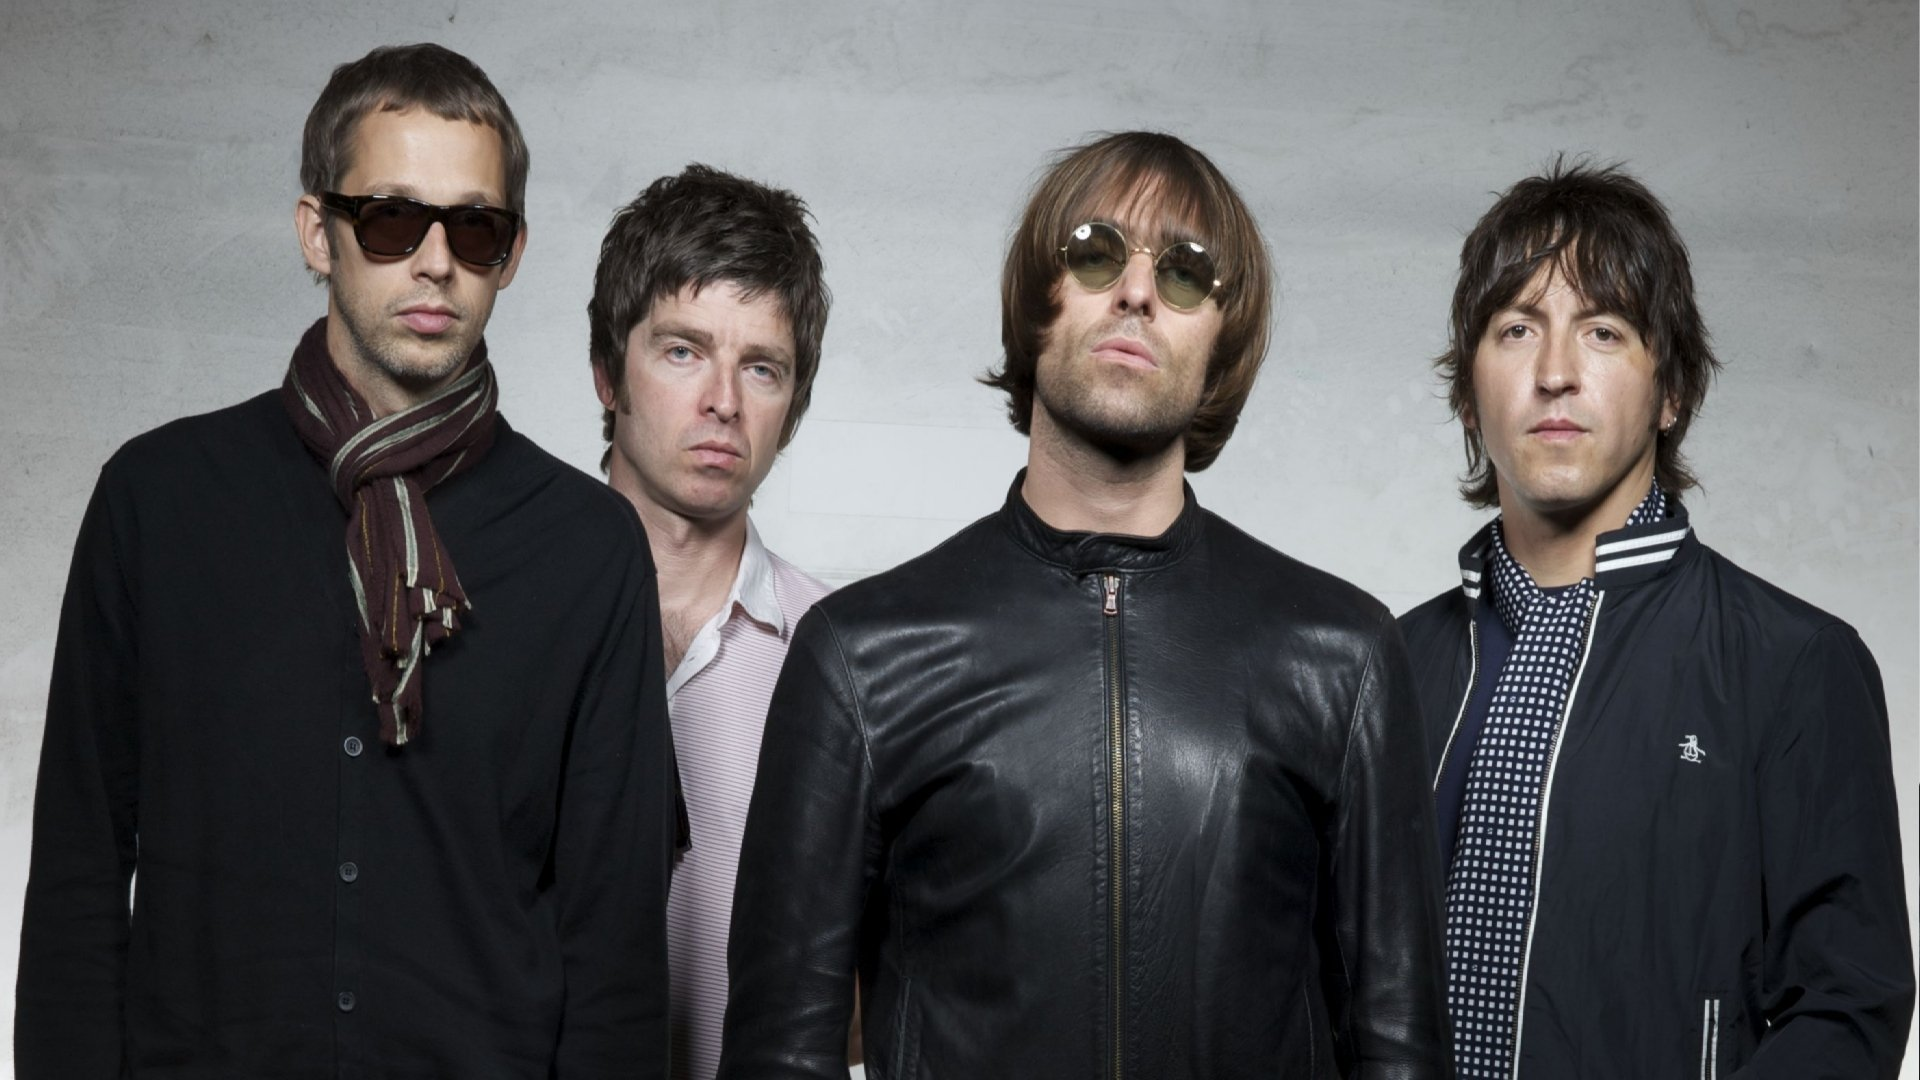 Oasis HD Wallpaper   Background Image   1920x1080   ID ... Oasis Band Wallpaper